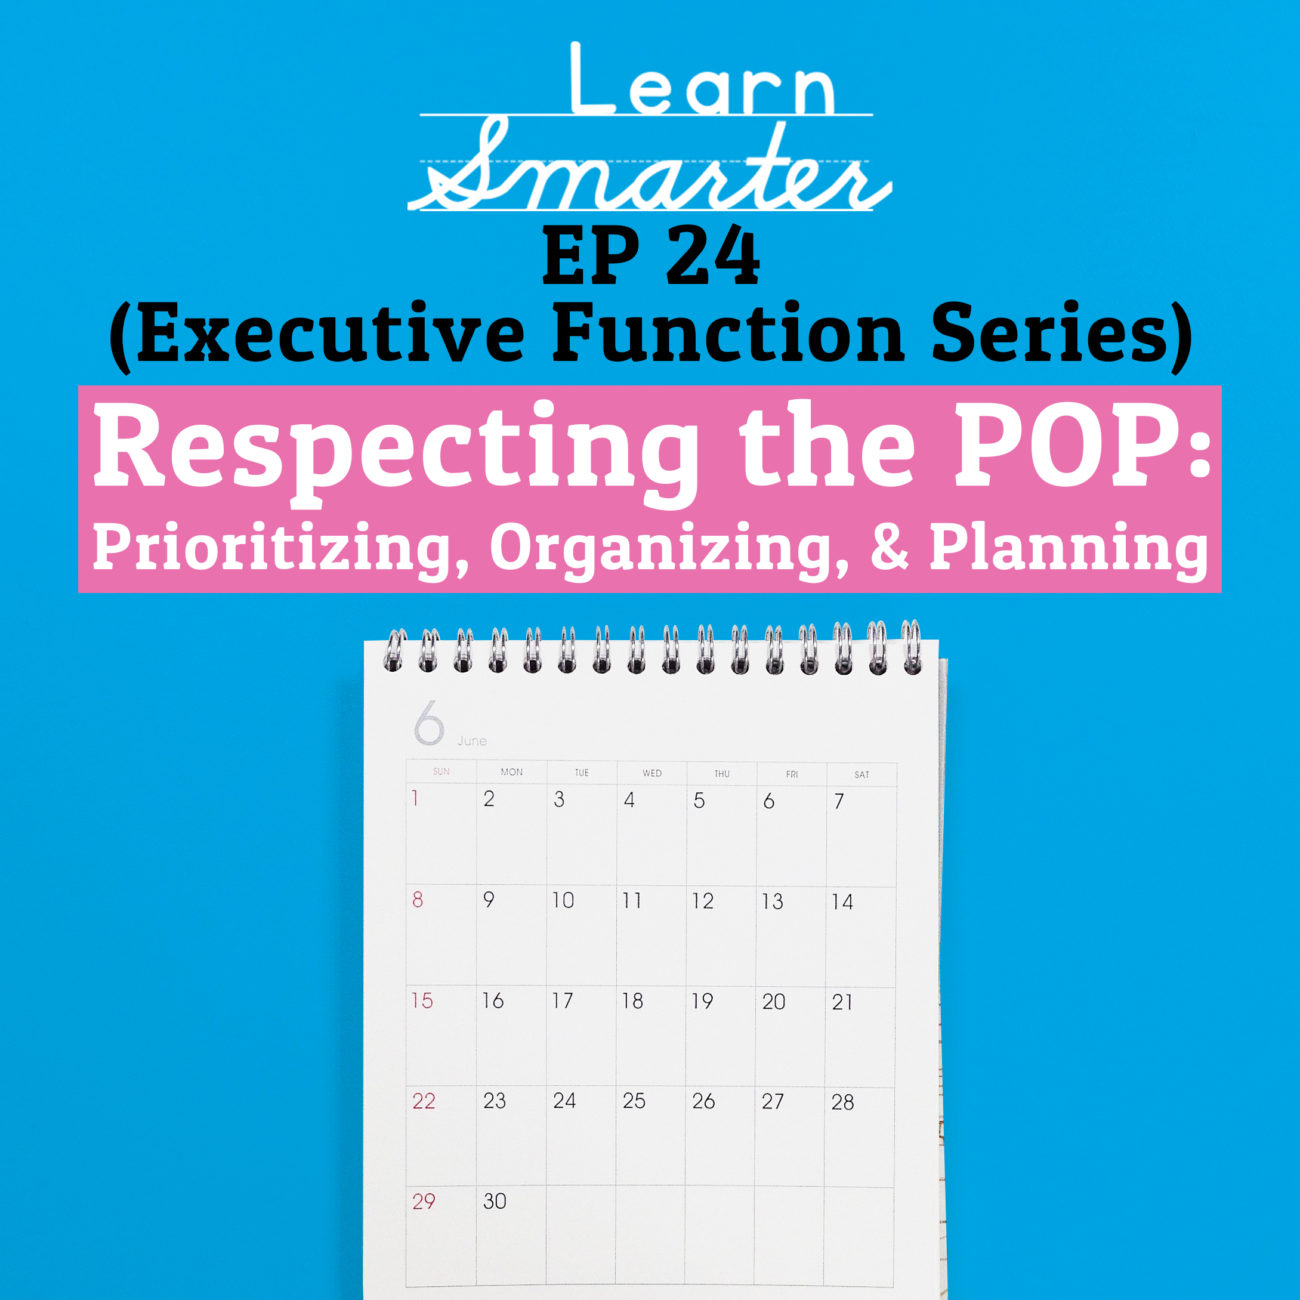 24: Respecting the POP: Prioritizing, Organizing, & Planning